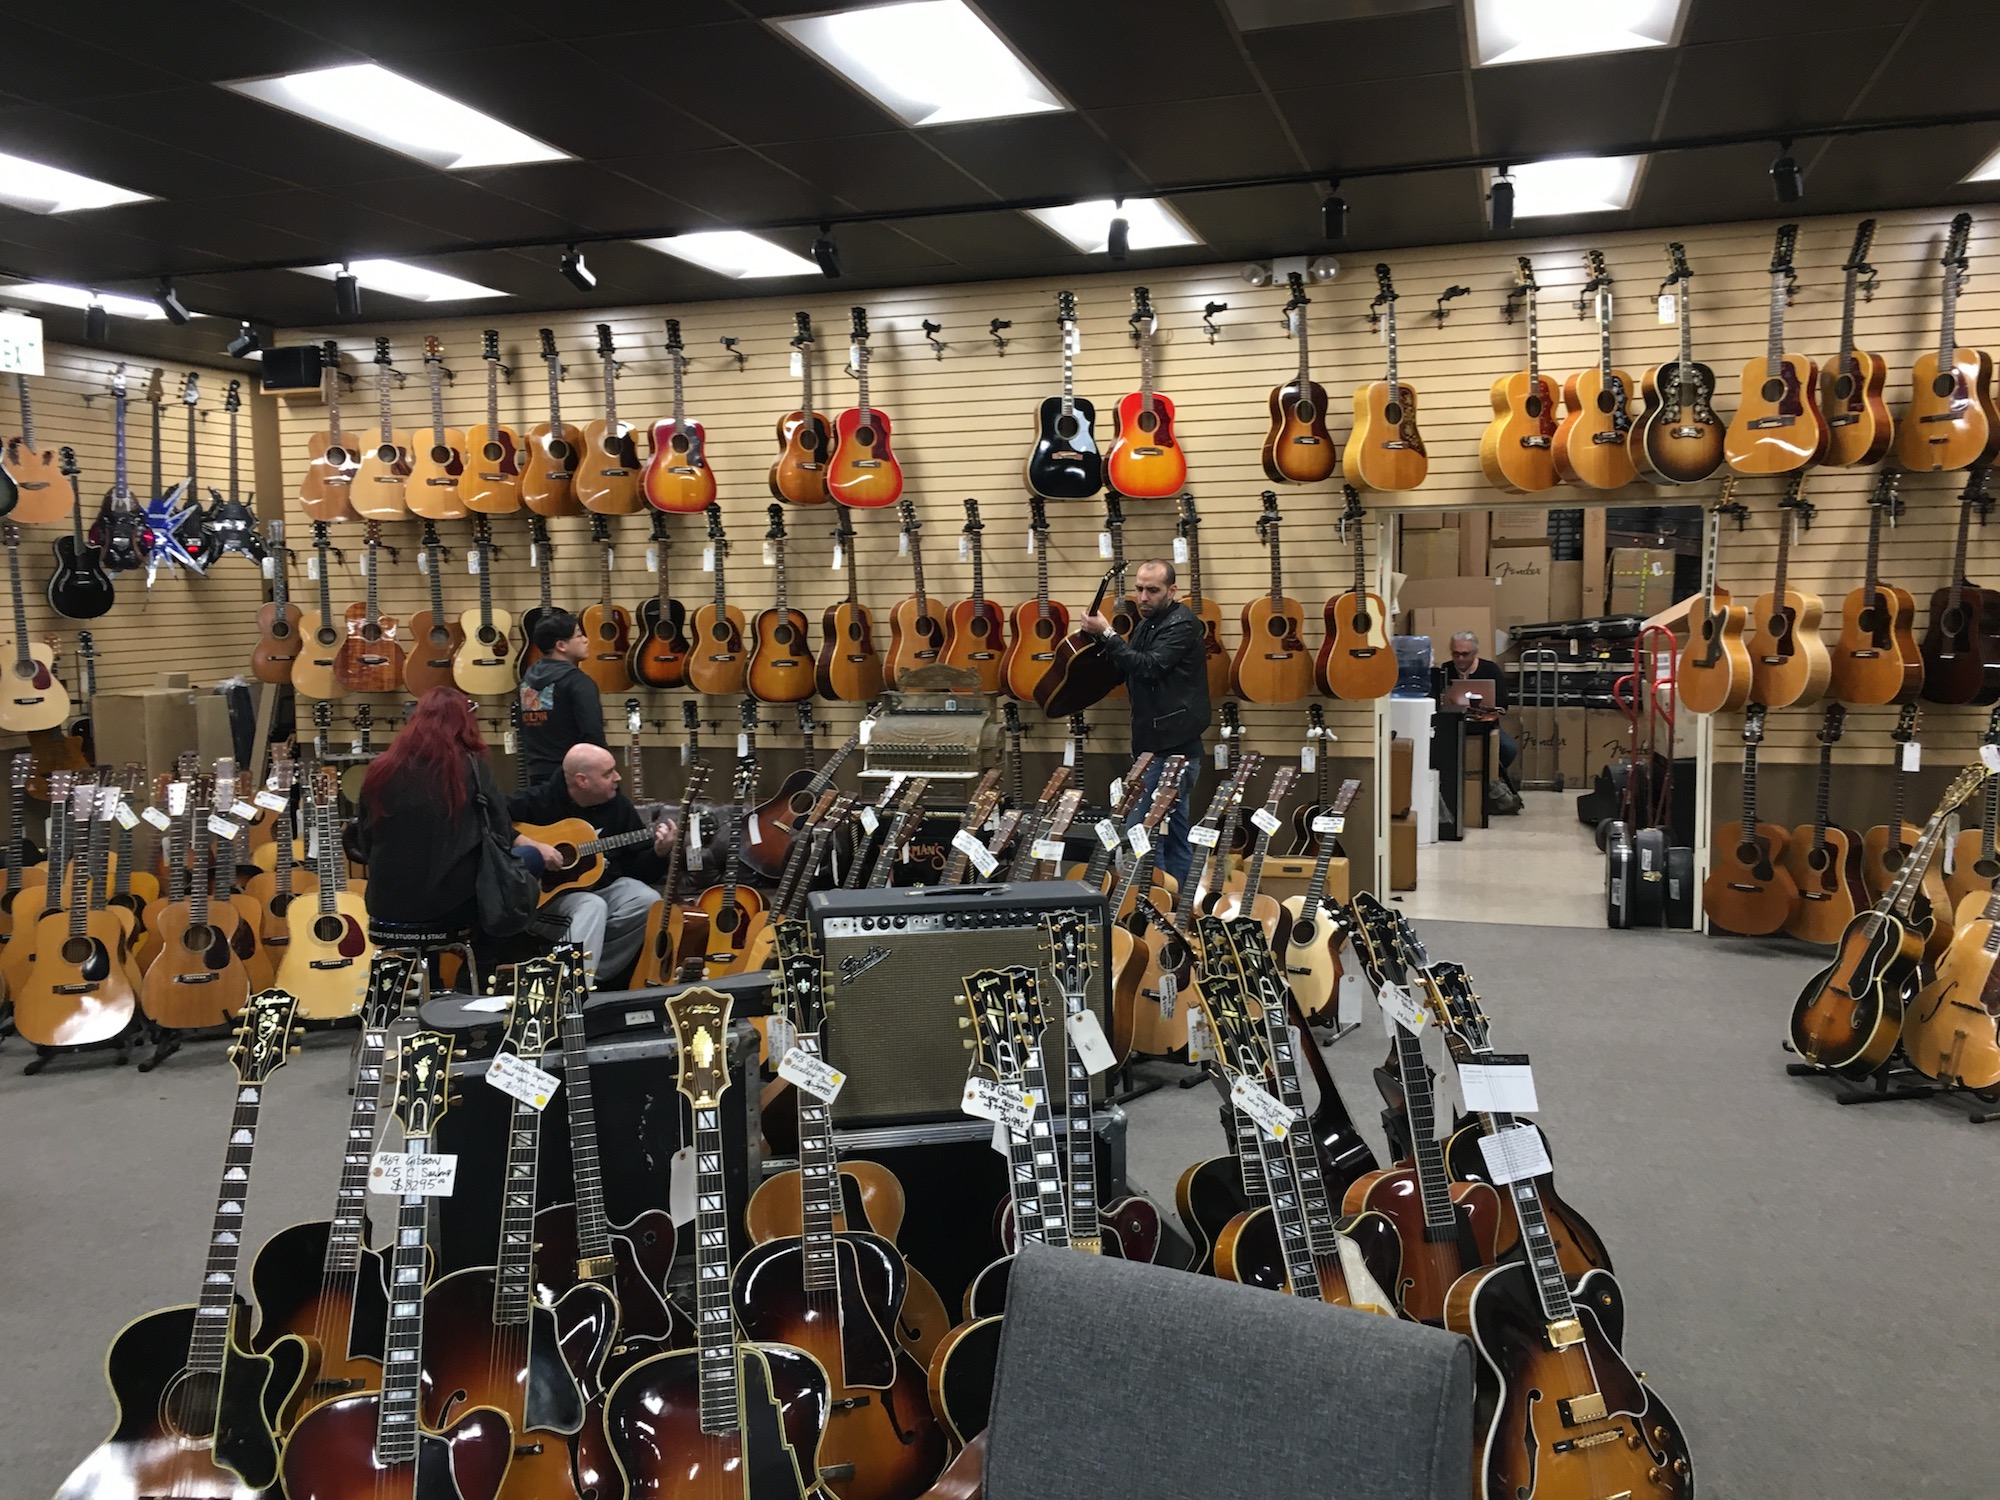 Norman's Rare Guitars - Interviews and visit - Legendary Vintage guitar store in Los Angeles